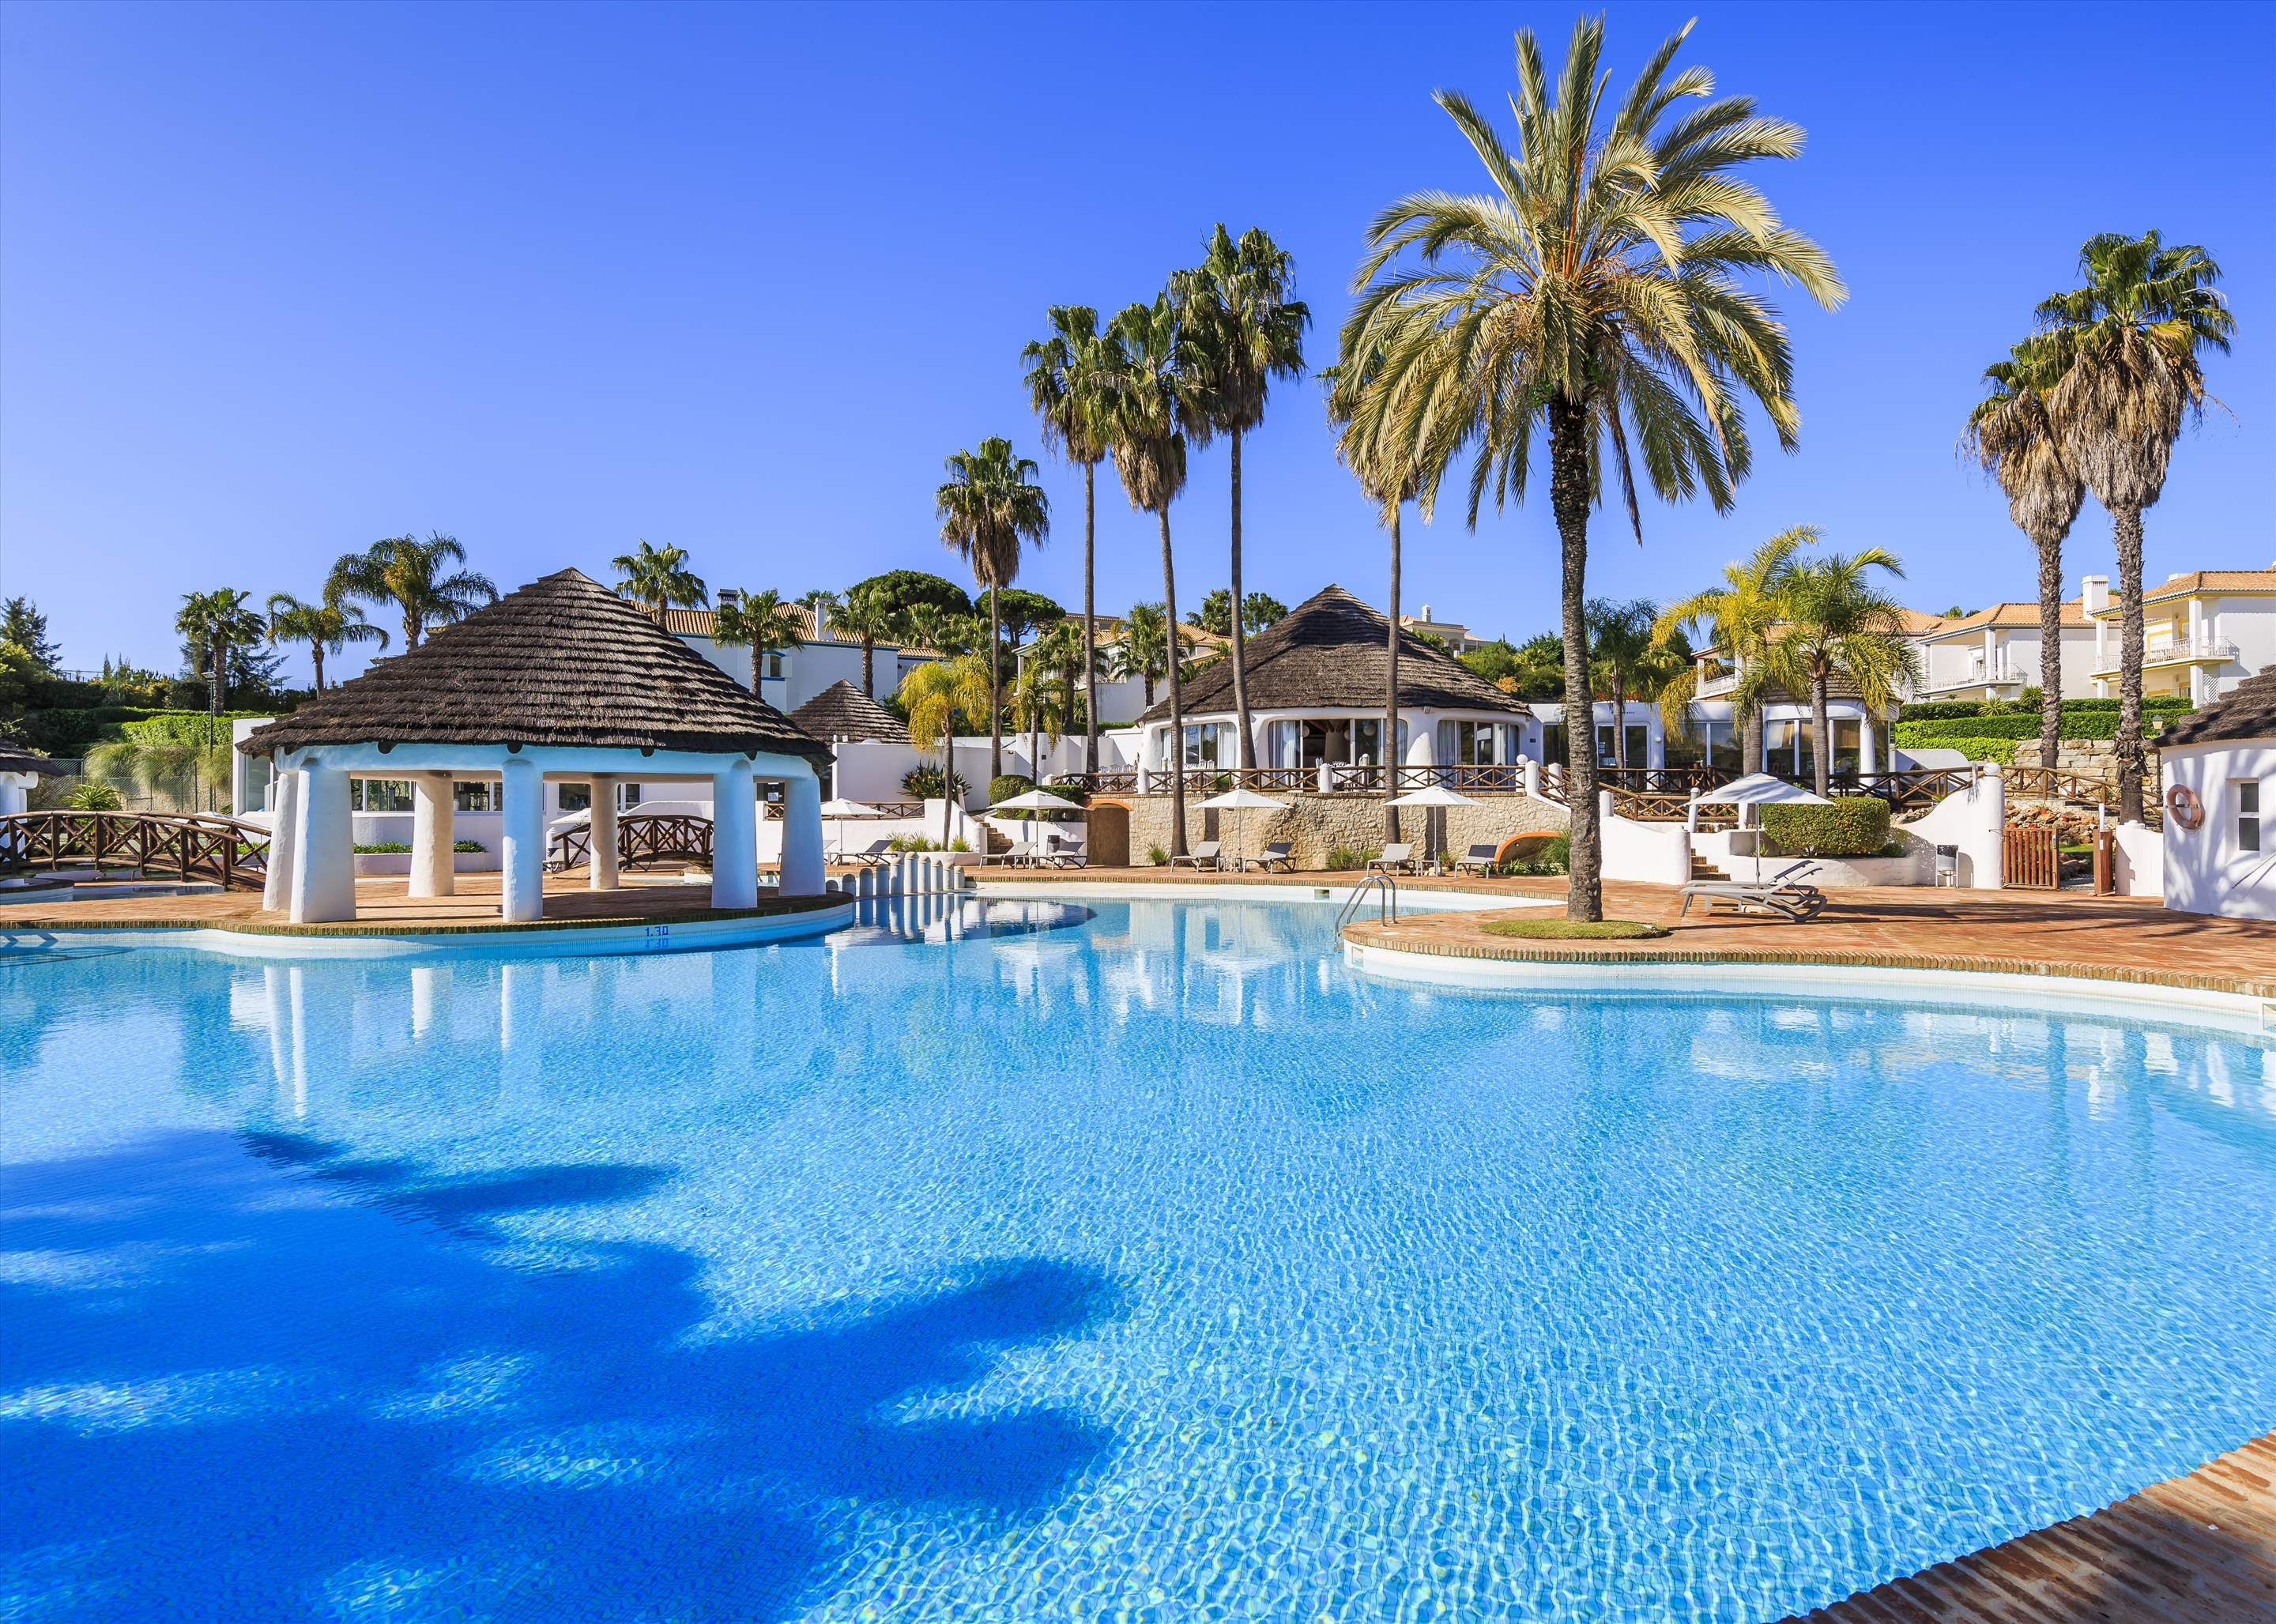 Encosta do Lago 1 Bedroom Apt, Top Floor, 1 bedroom apartment in Encosta do Lago Resort, Algarve Photo #1